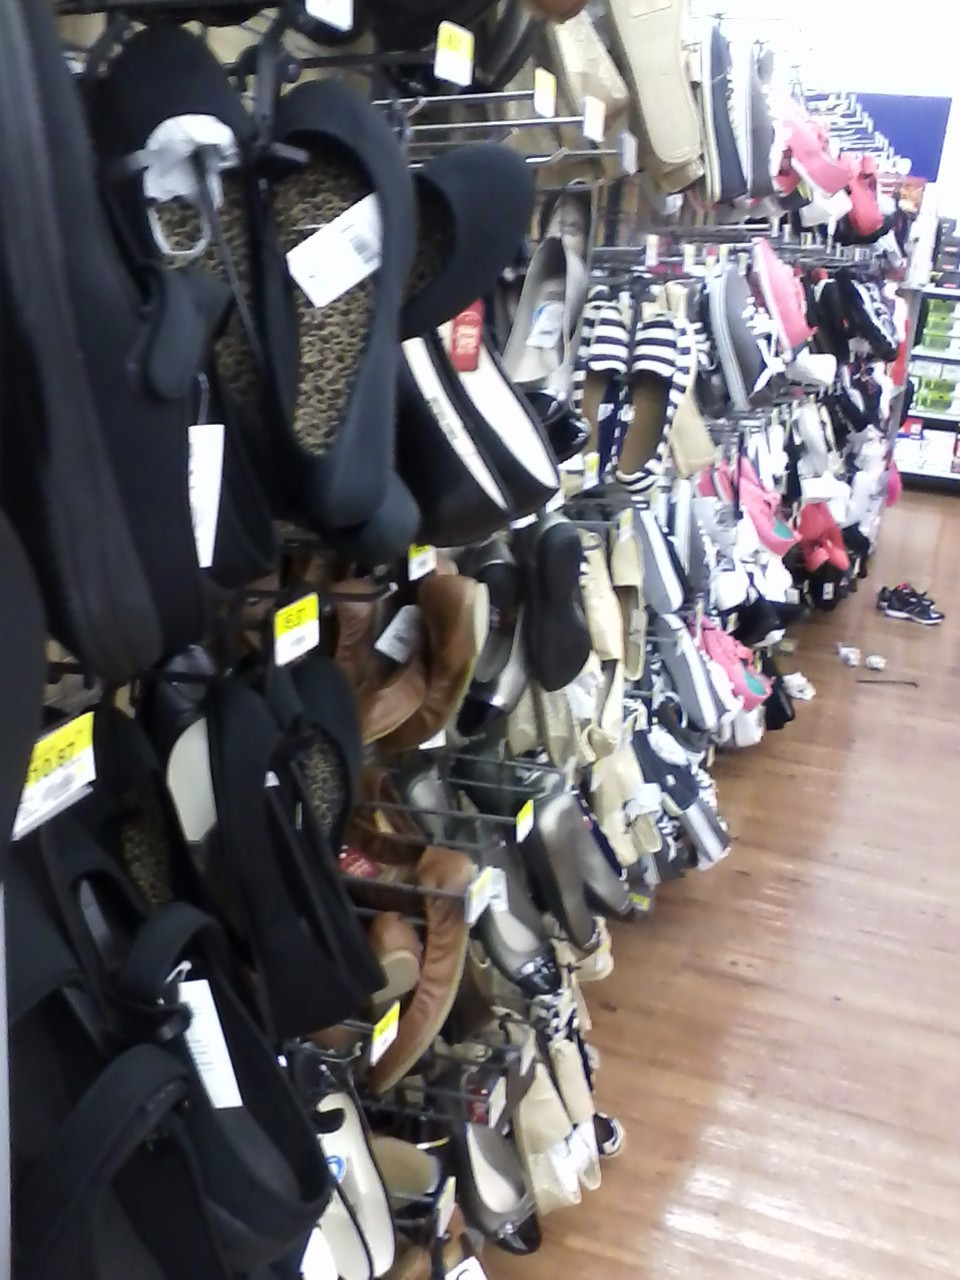 83c84500578c Shoes hanging out at Walmart